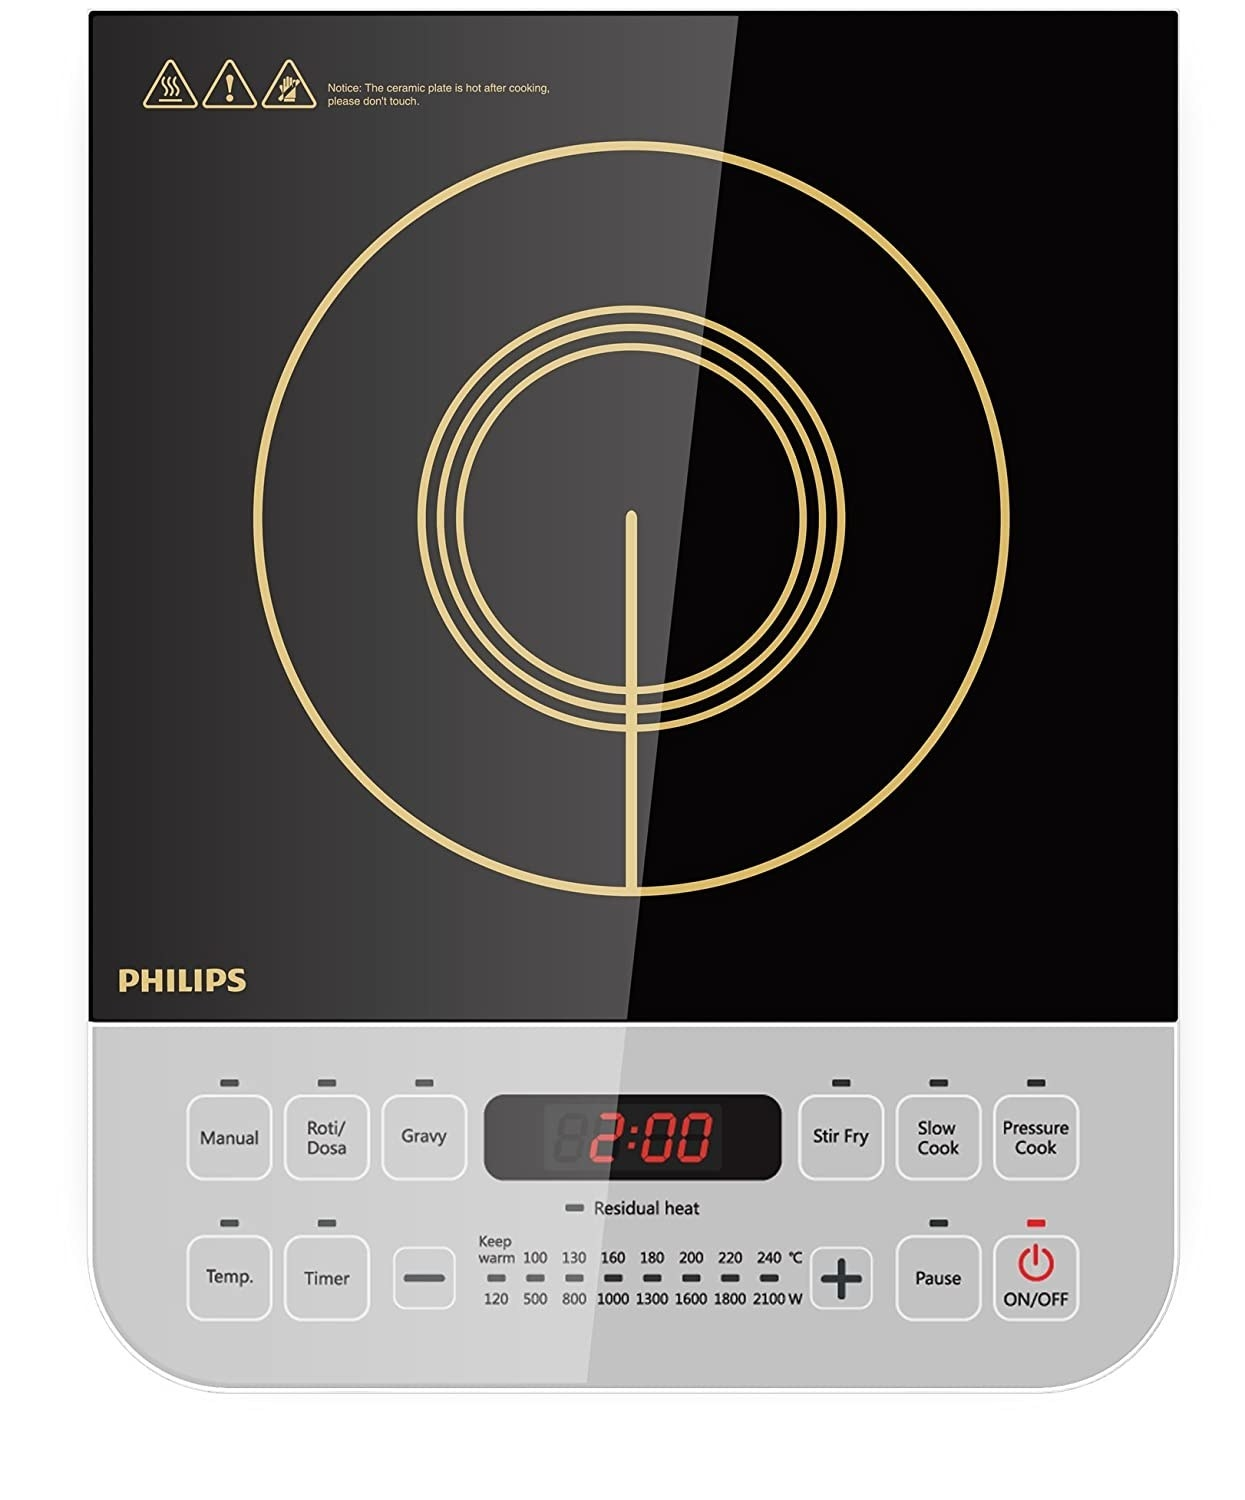 A grey and black induction cooktop